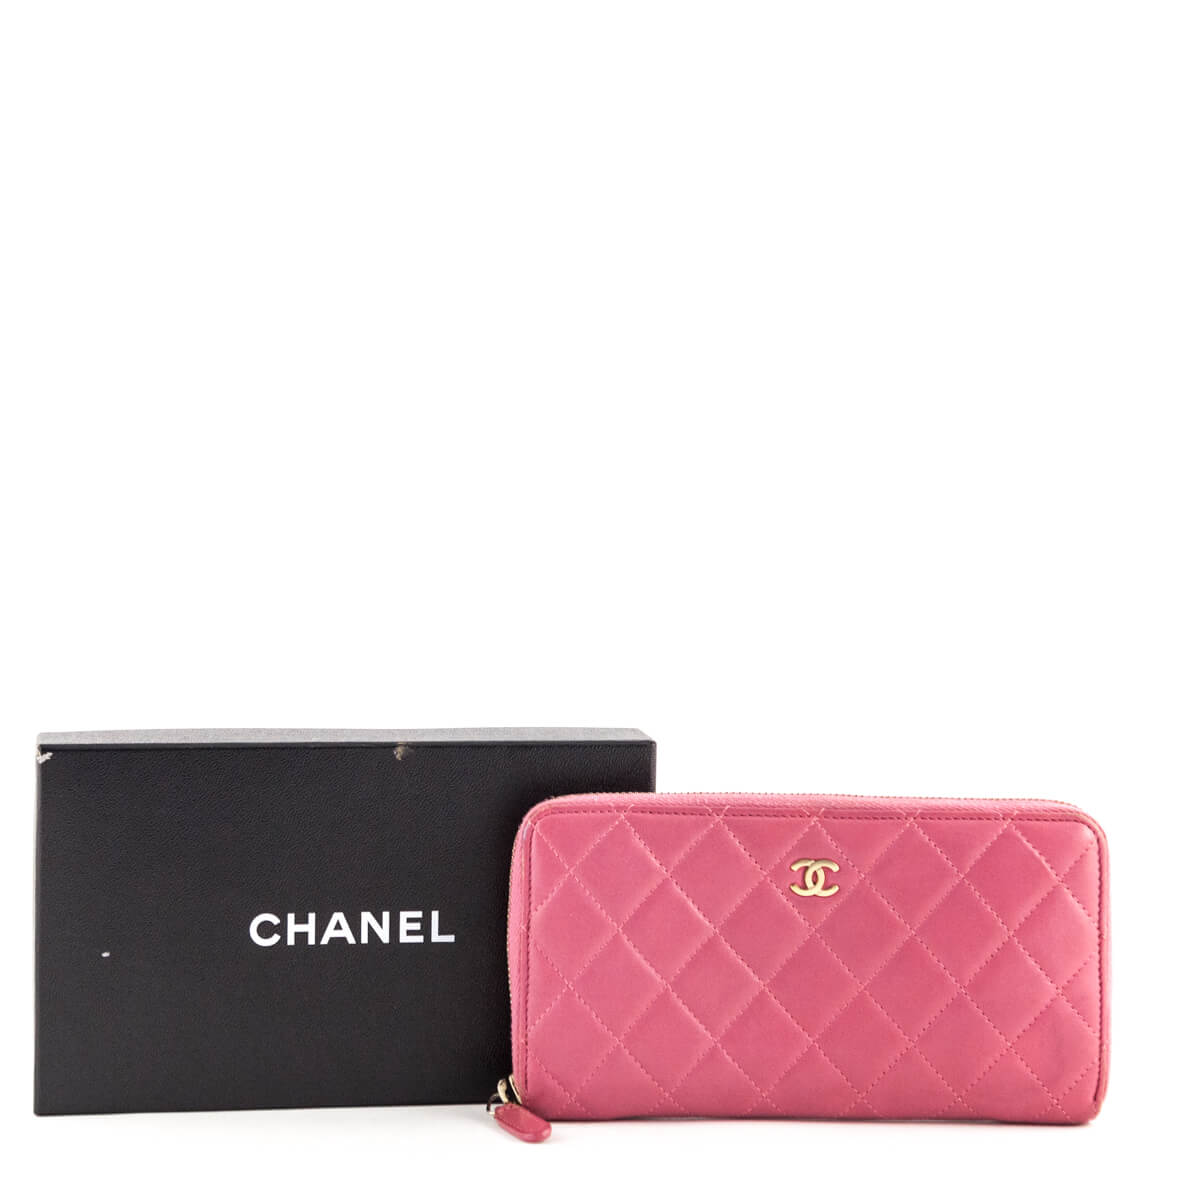 0f67f32404ac ... Chanel Pink Quilted Lambskin Zip Around Wallet - LOVE that BAG - Preowned  Authentic Designer Handbags ...